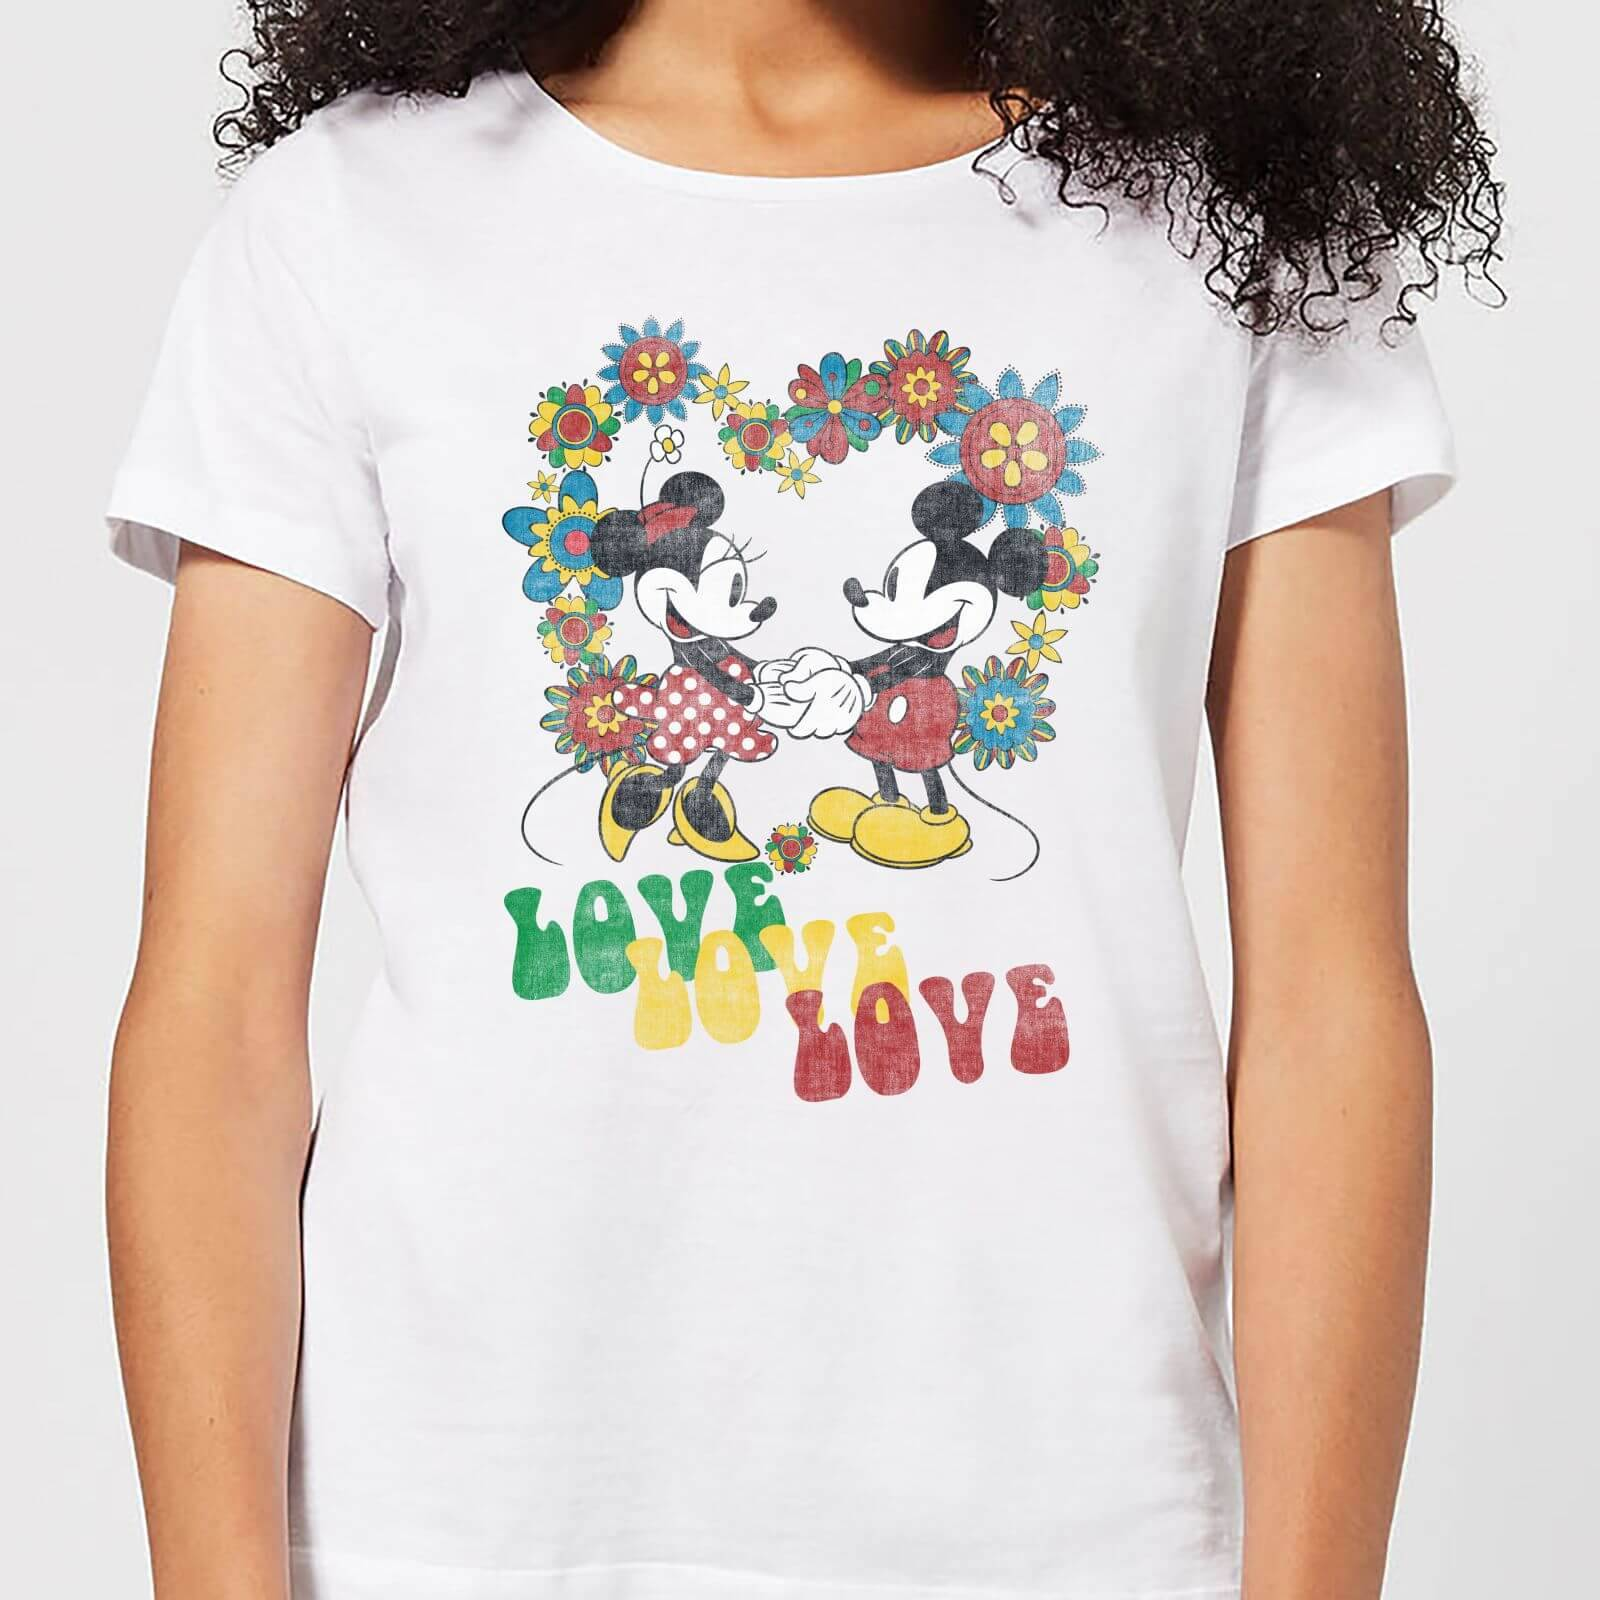 Disney Mickey Mouse Hippie Love Women's T-Shirt - White - 3XL - White